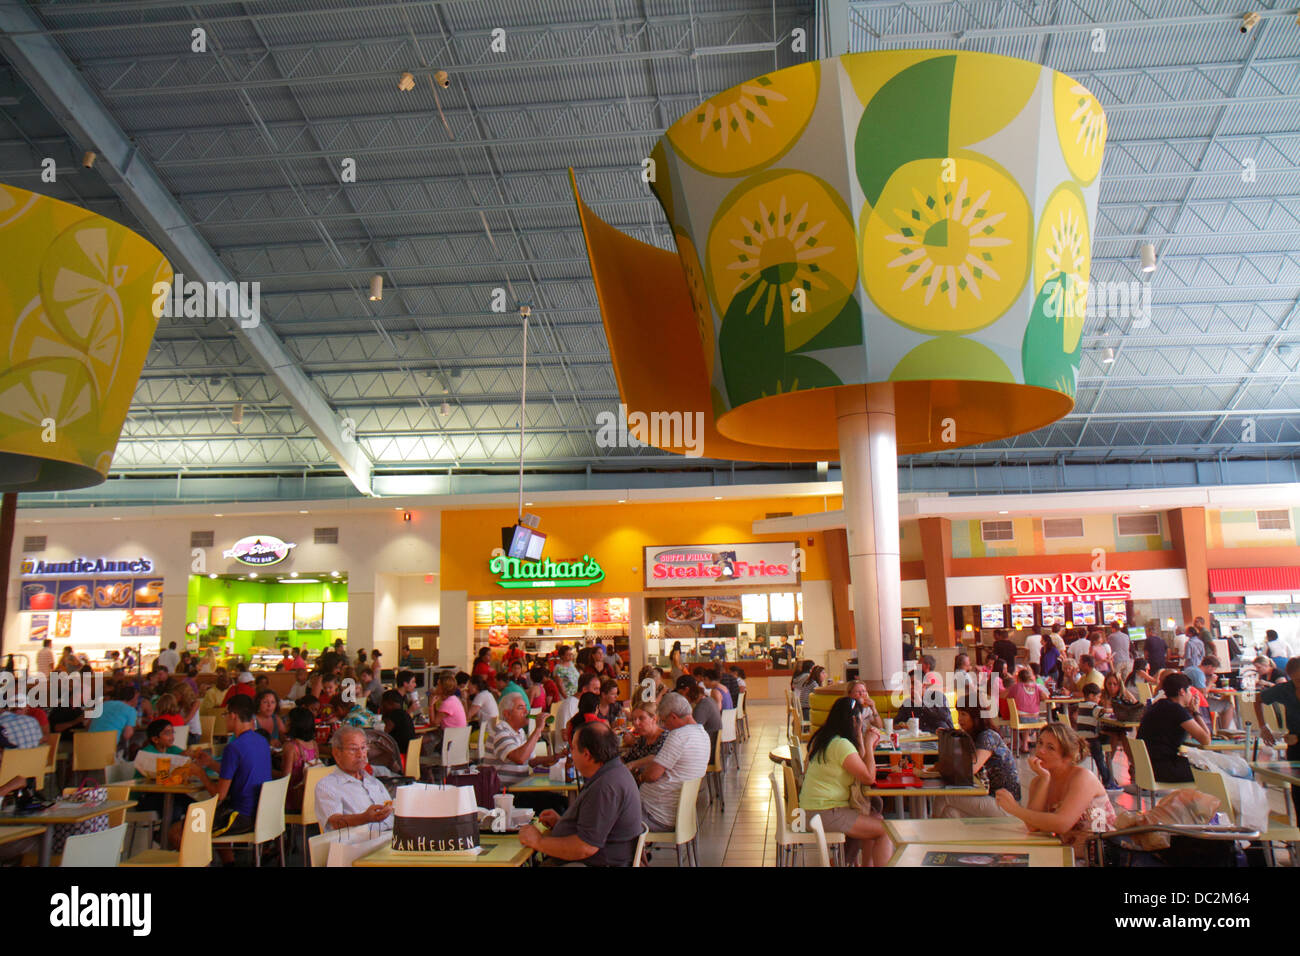 Florida Sunrise Fort Ft. Lauderdale Sawgrass Mills Mall food court tables restaurant families - Stock Image